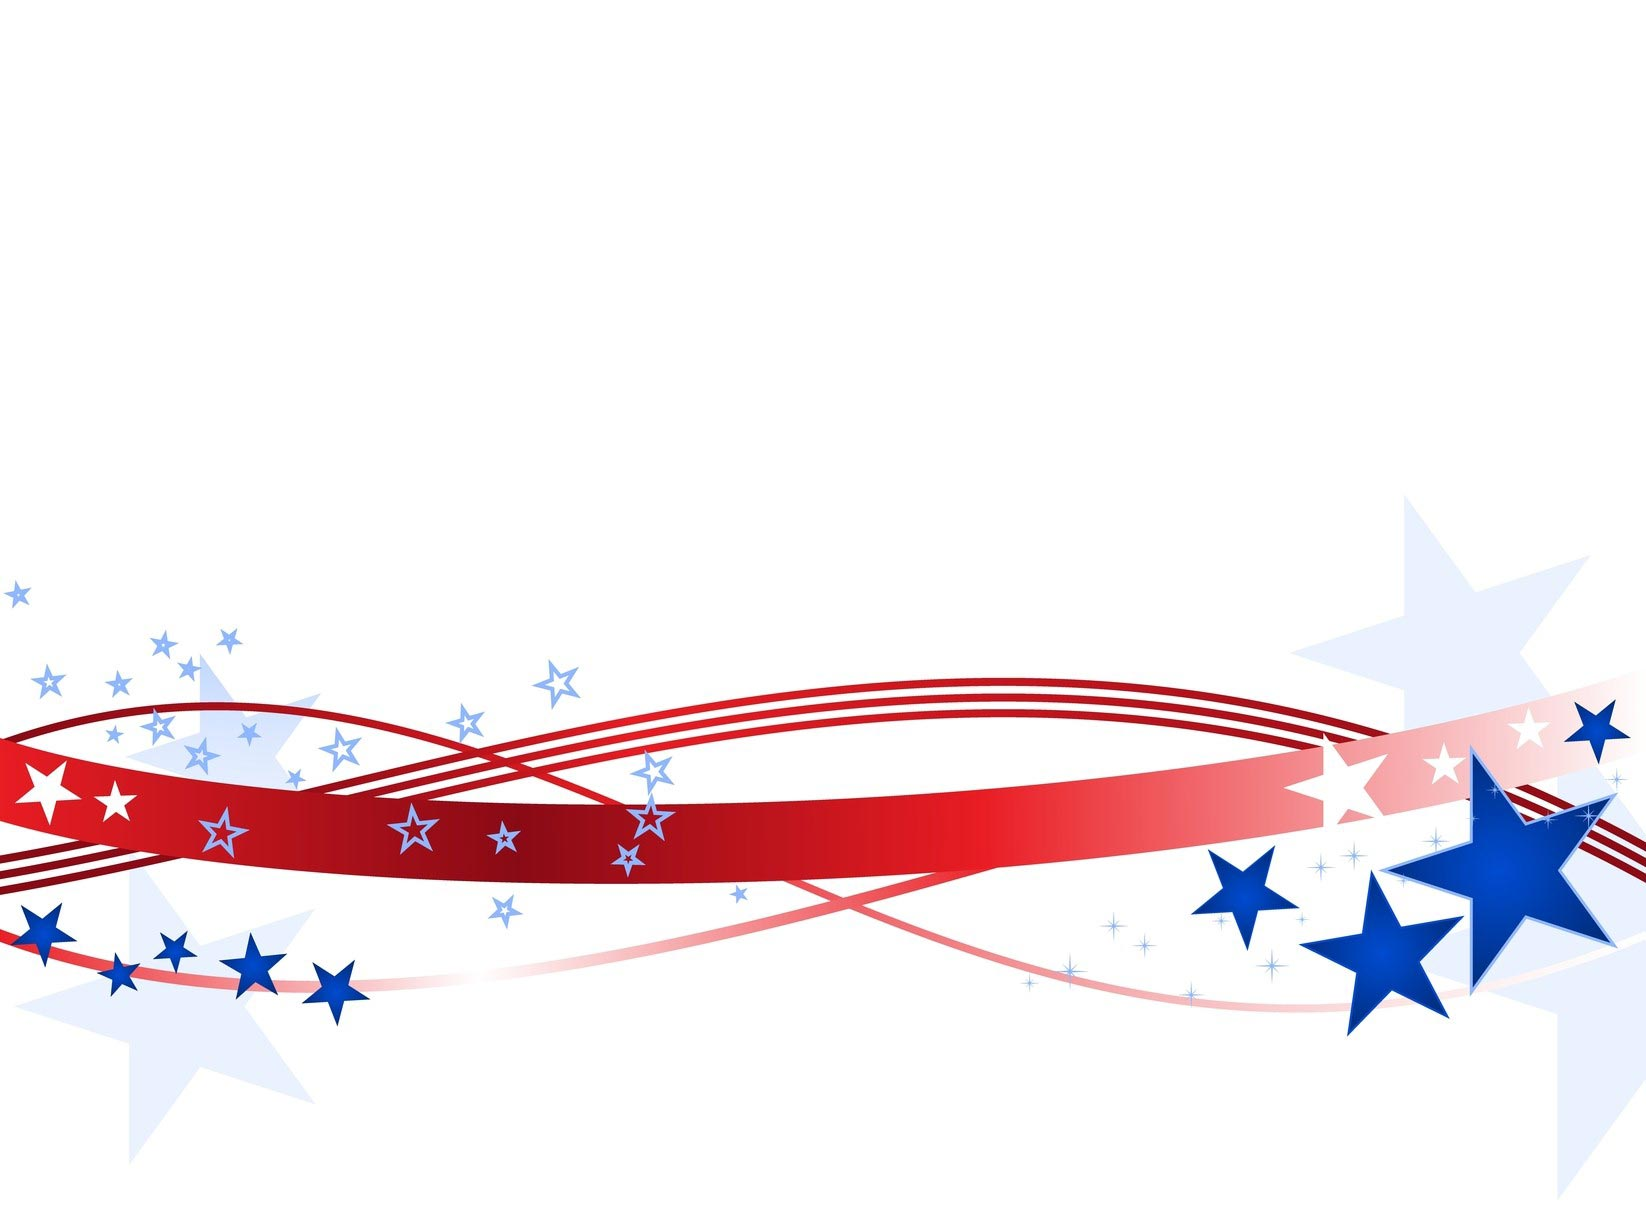 Firecracker clipart banner. Red white and blue